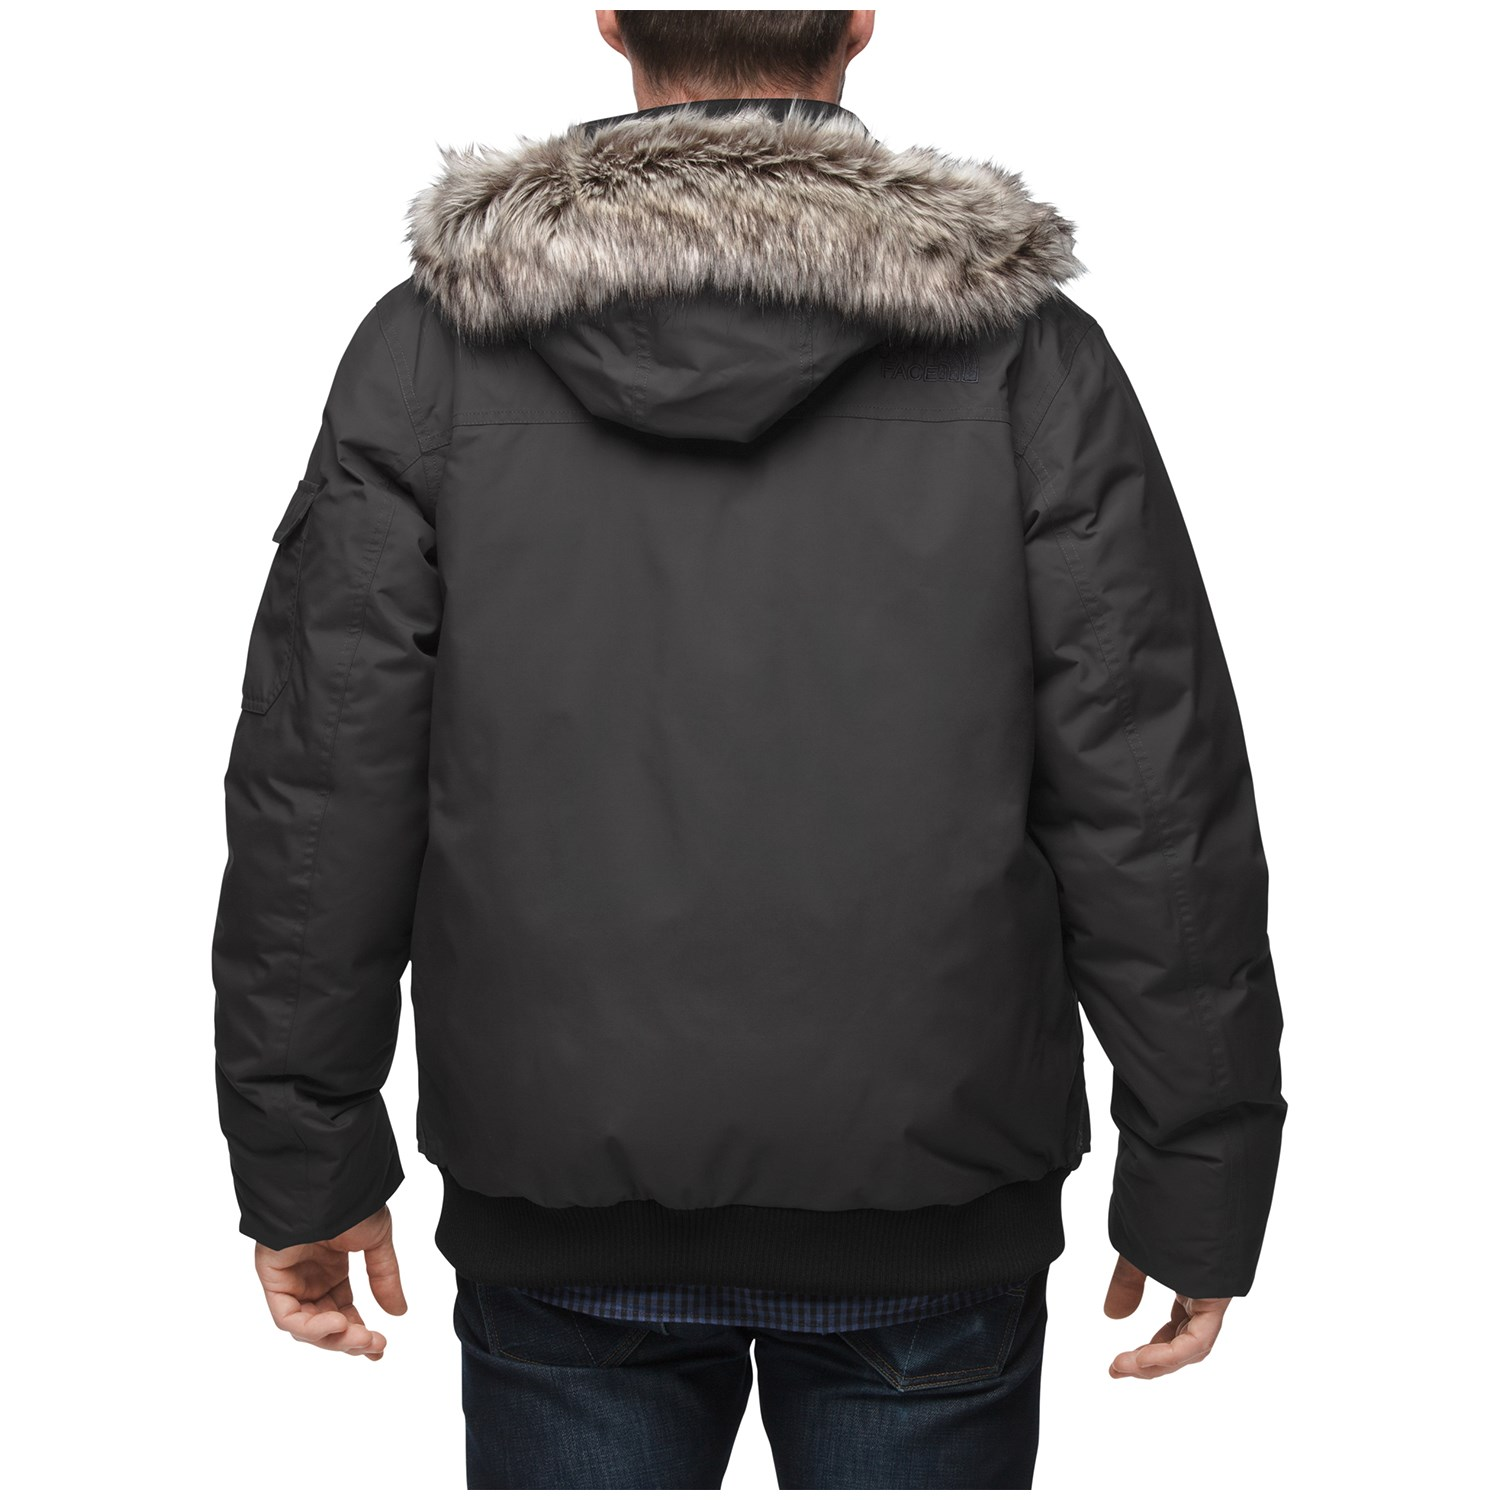 137cacbfd The North Face Gotham III Jacket